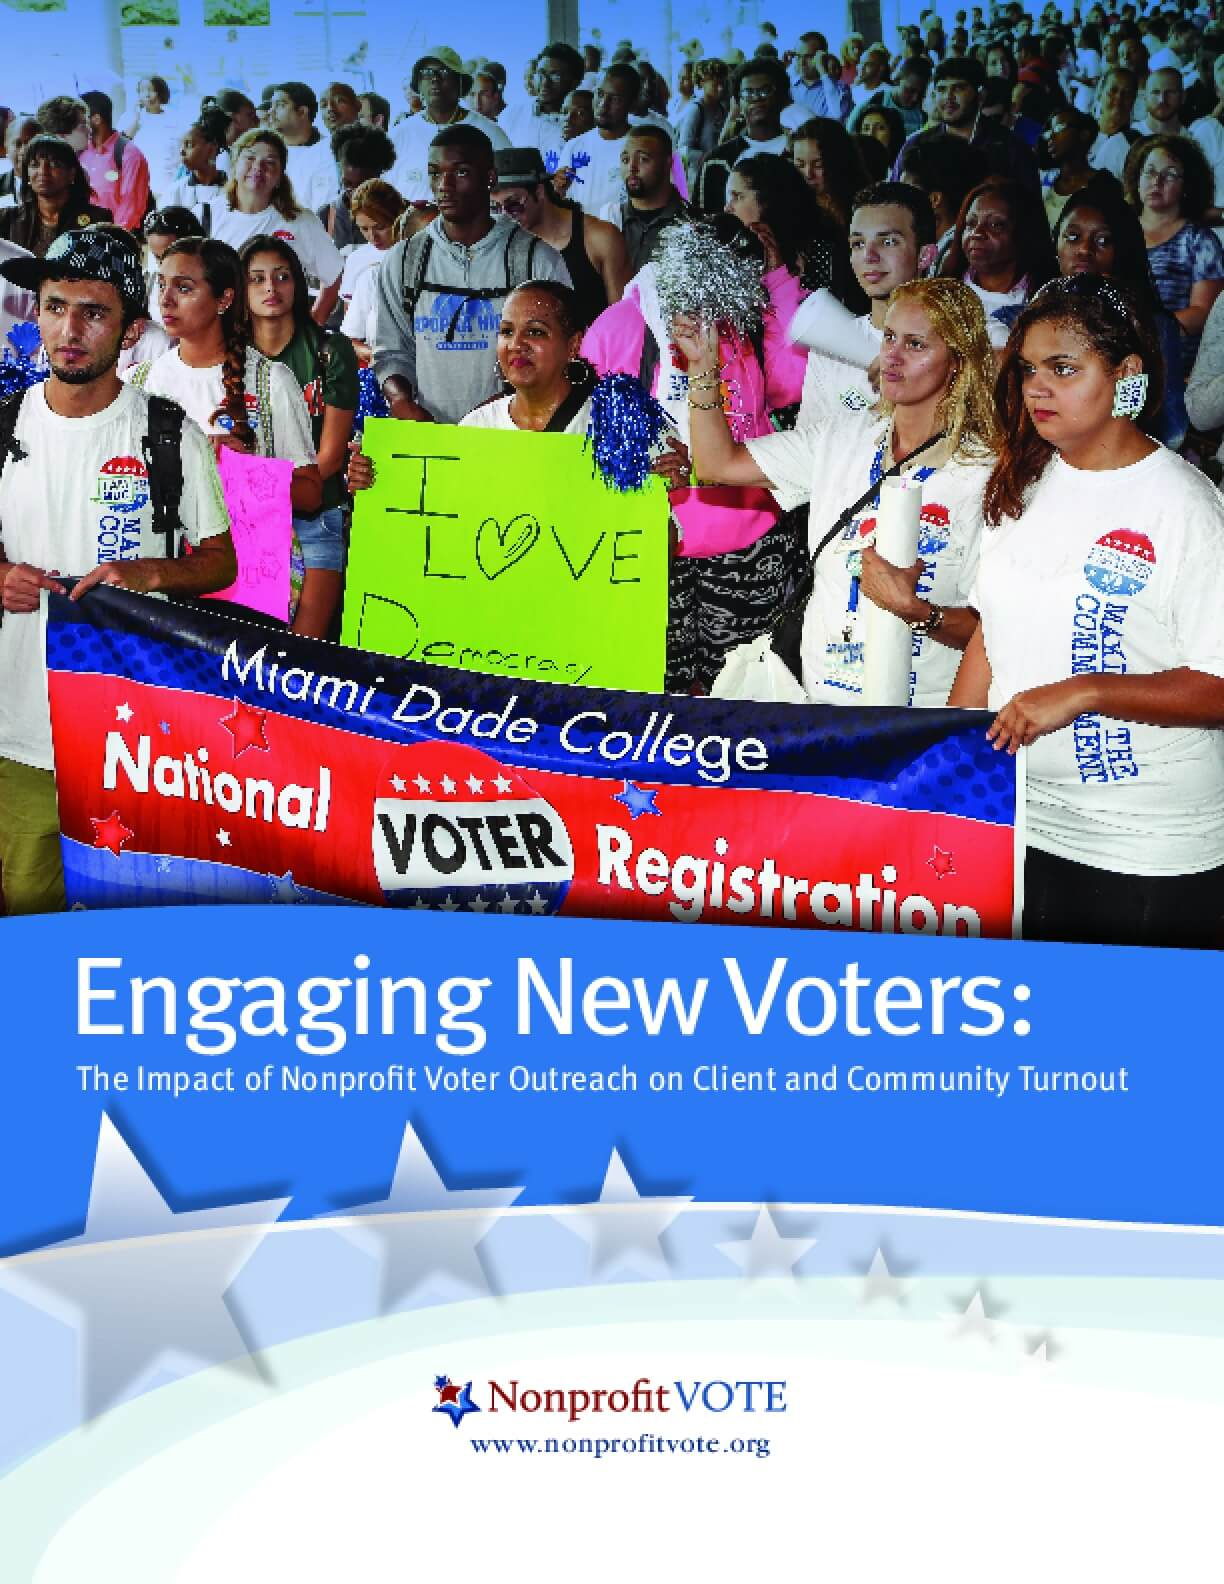 Engaging New Voters: The Impact of Nonprofit Voter Outreach on Client and Community Turnout